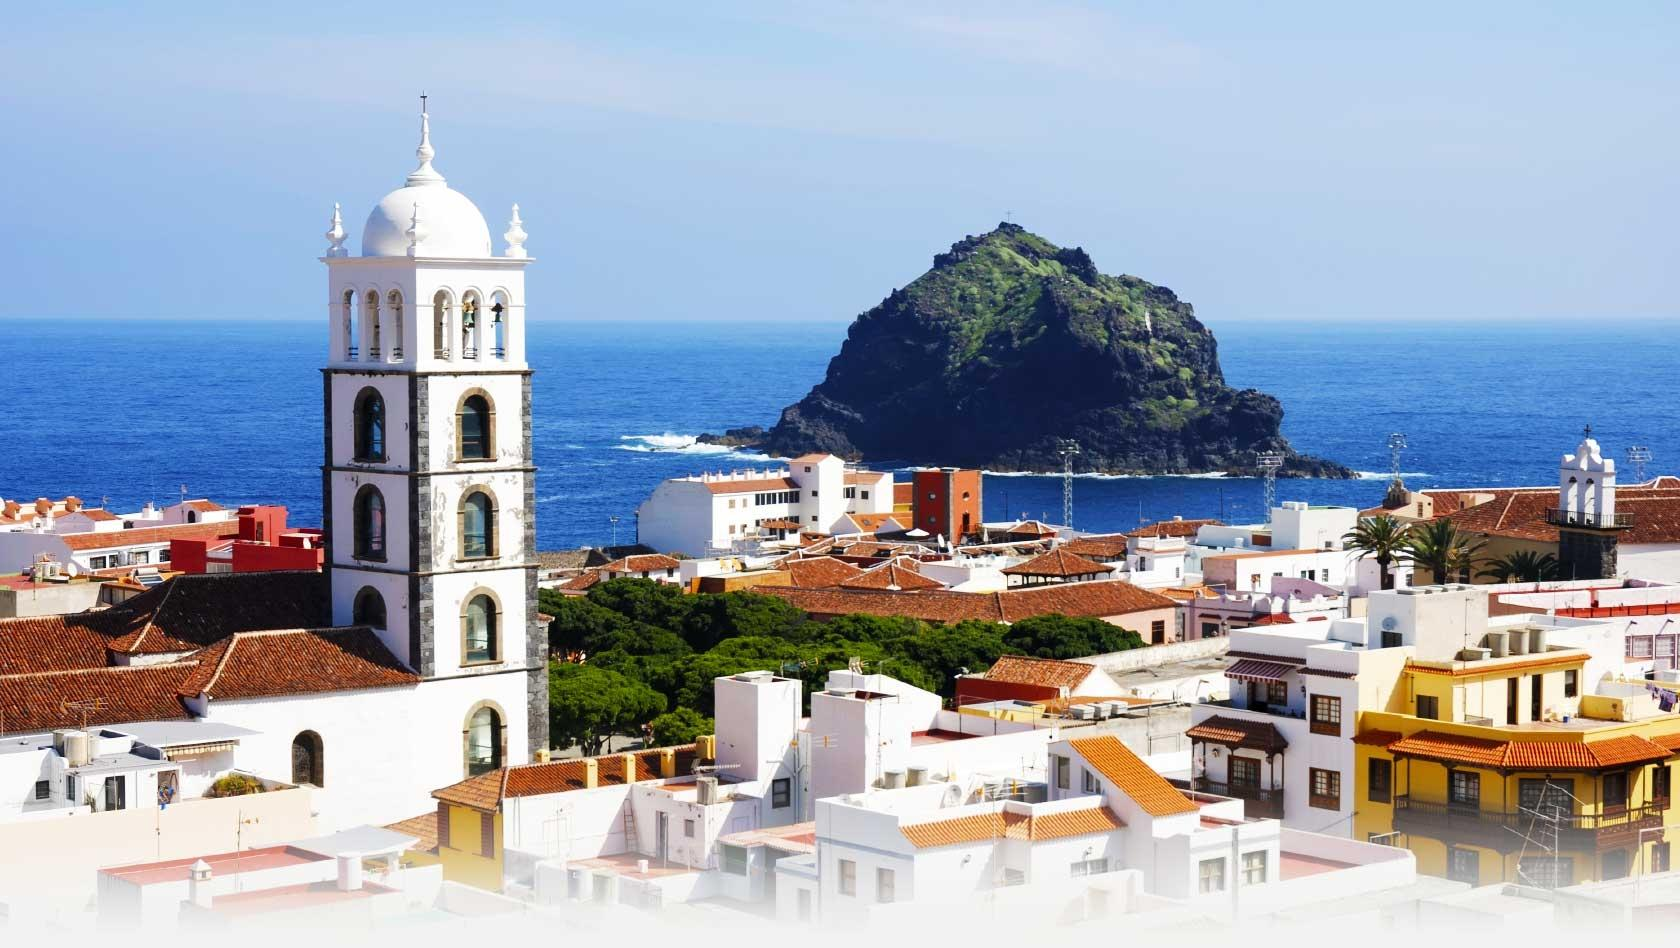 About Tenerife